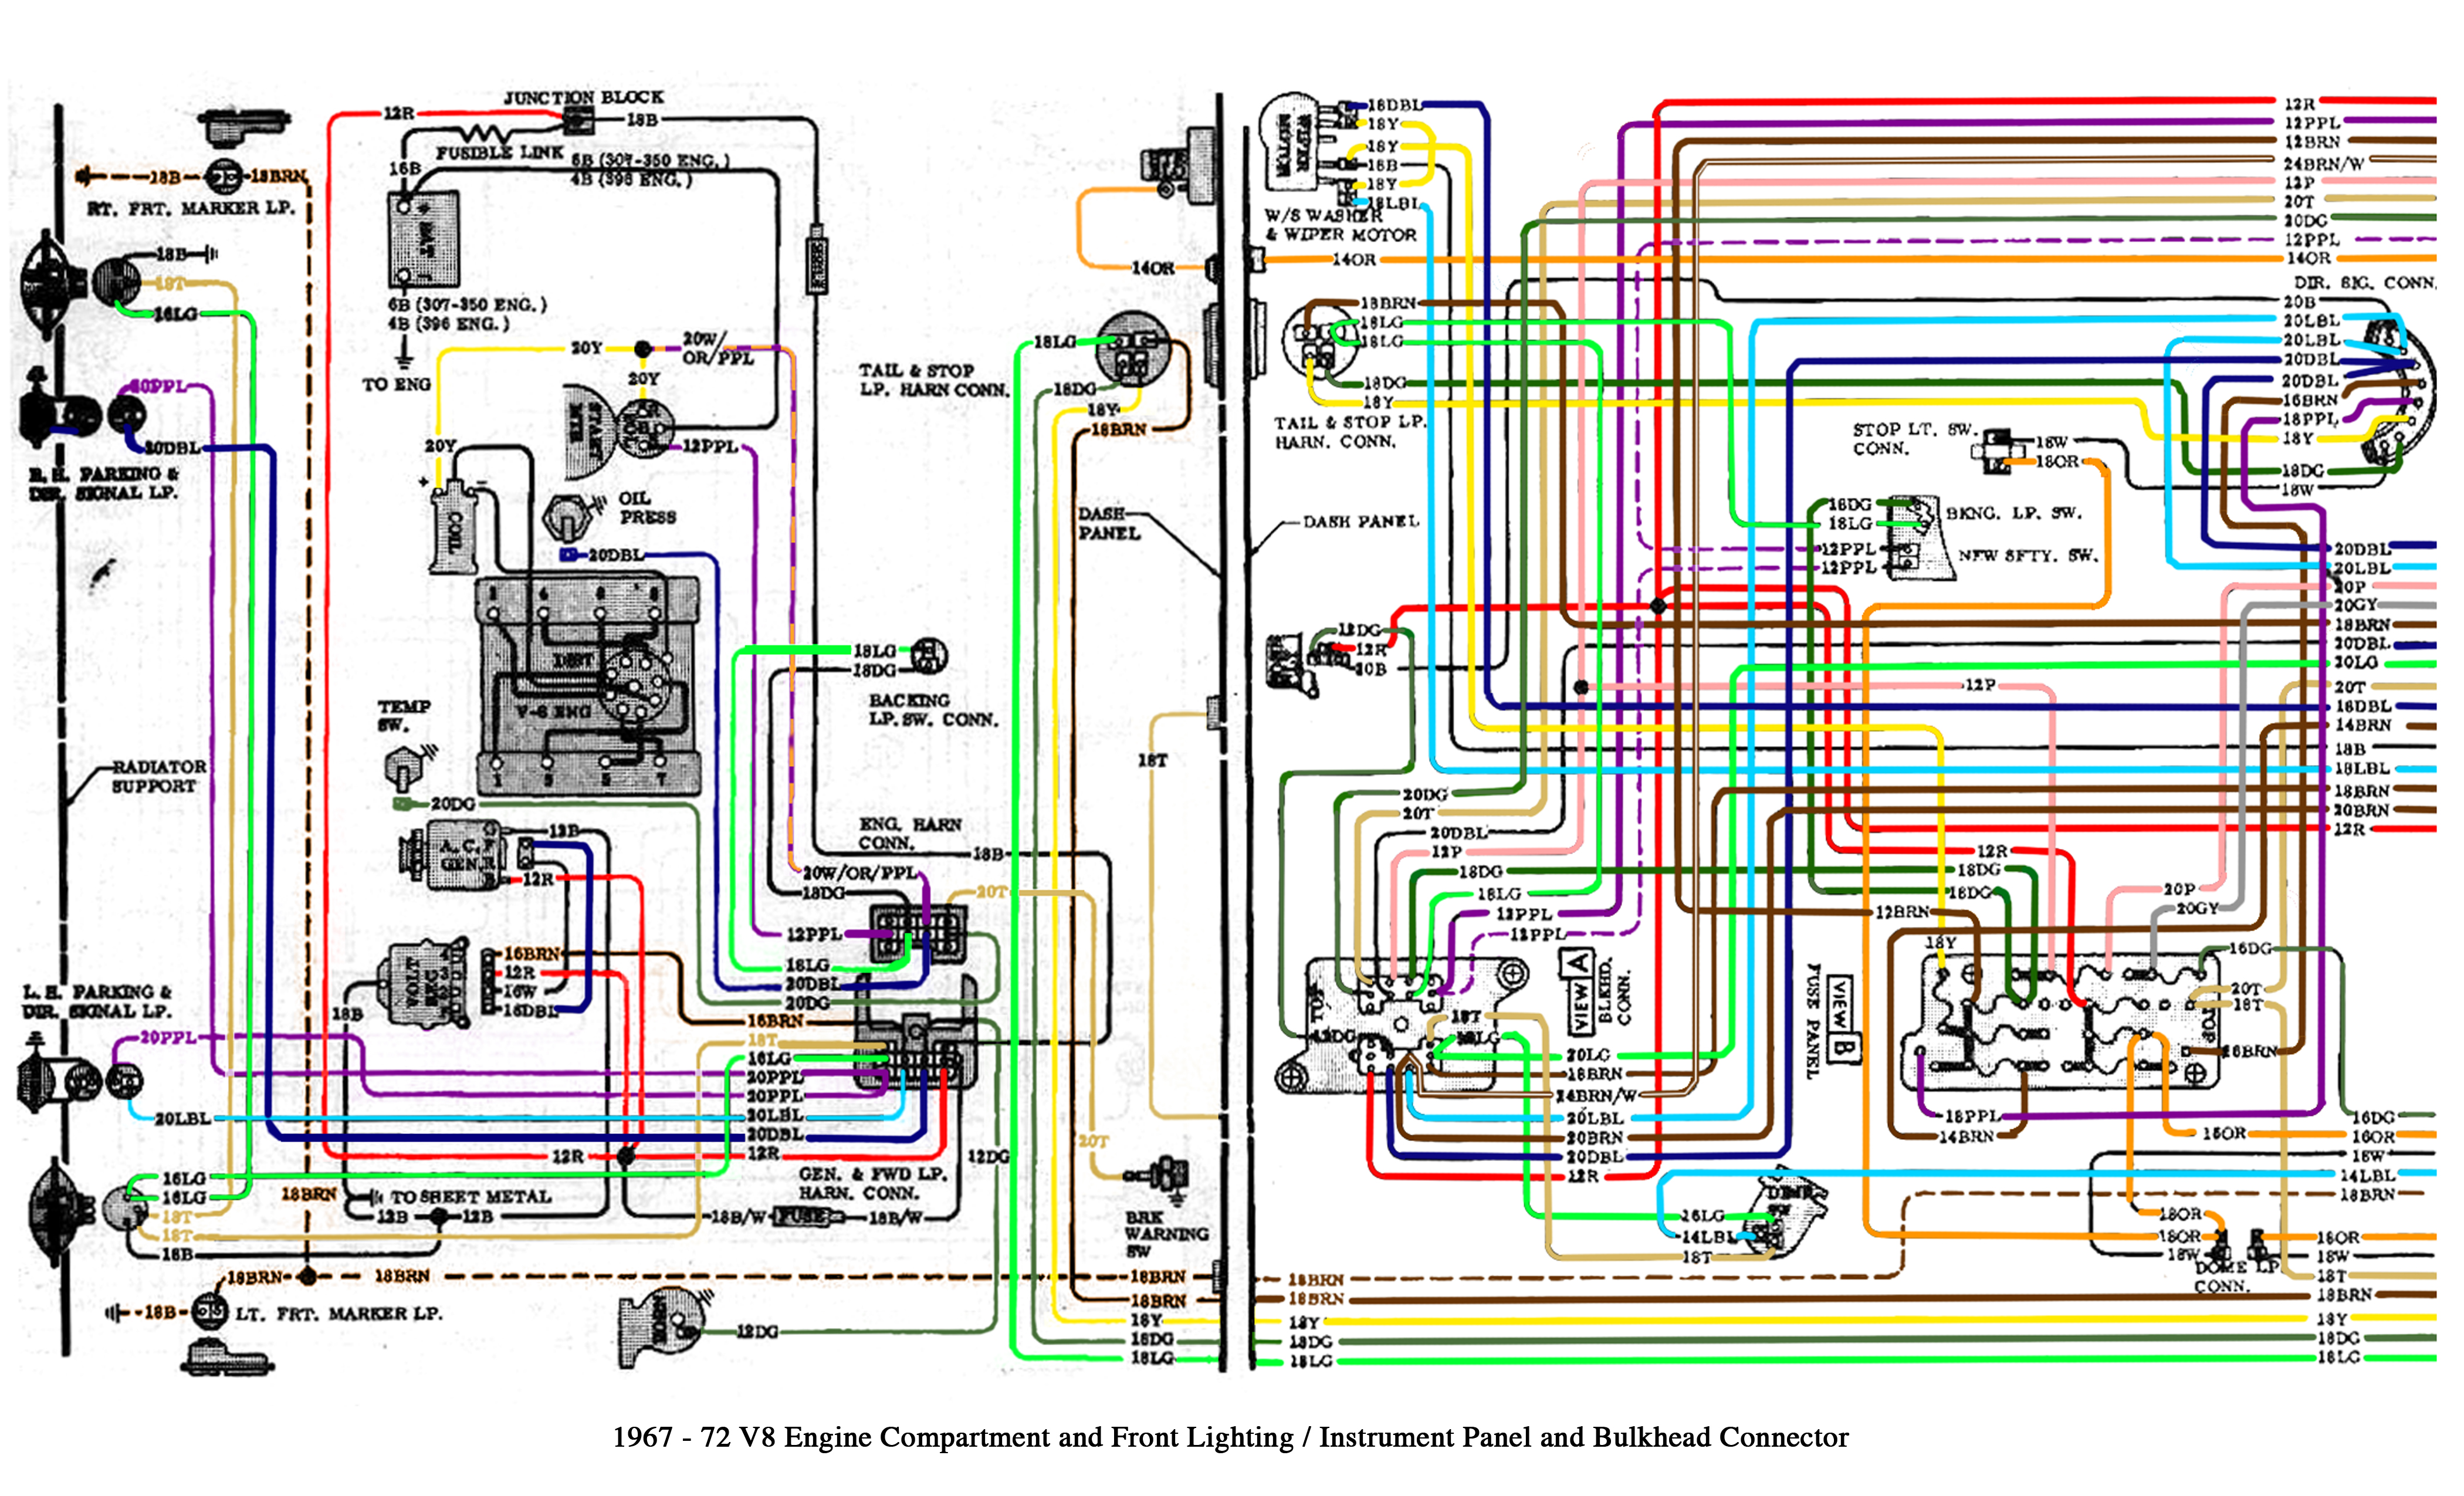 Corvette Wiring Diagram Besides 1979 Corvette Fuse Box Diagram